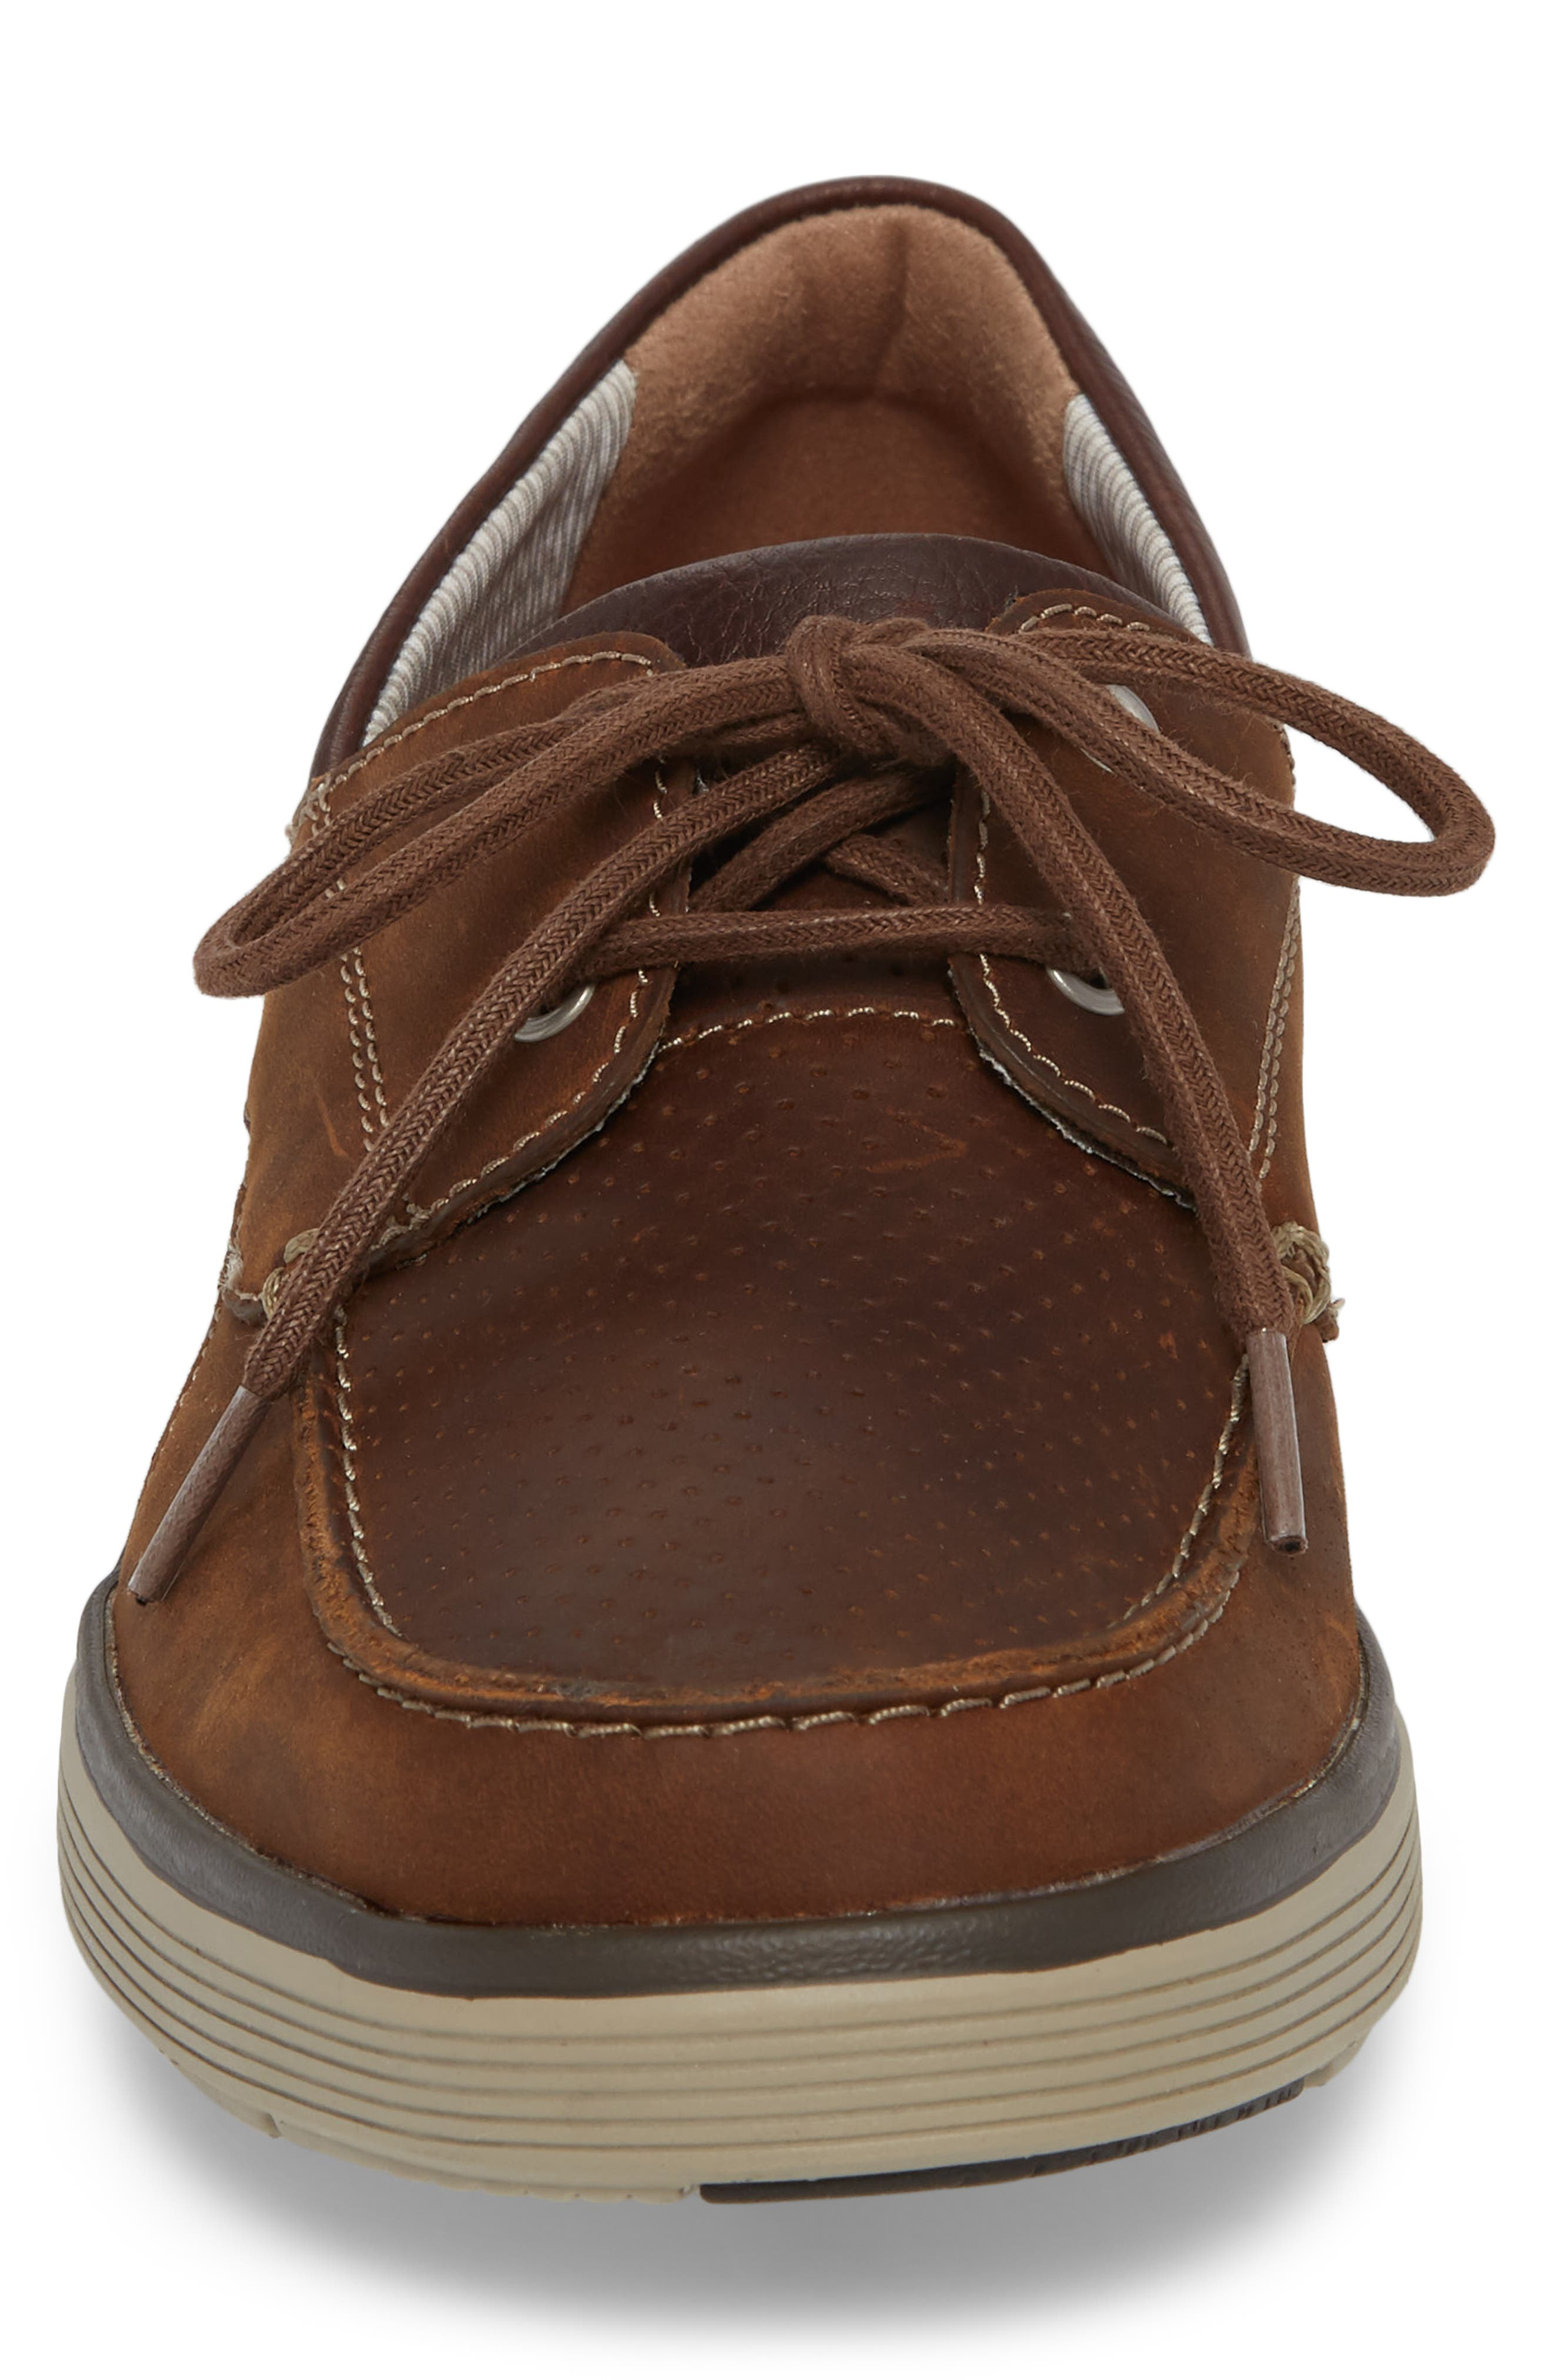 Clarks<sup>®</sup> Unabobe Step Boat Shoe,                             Alternate thumbnail 4, color,                             DARK TAN LEATHER